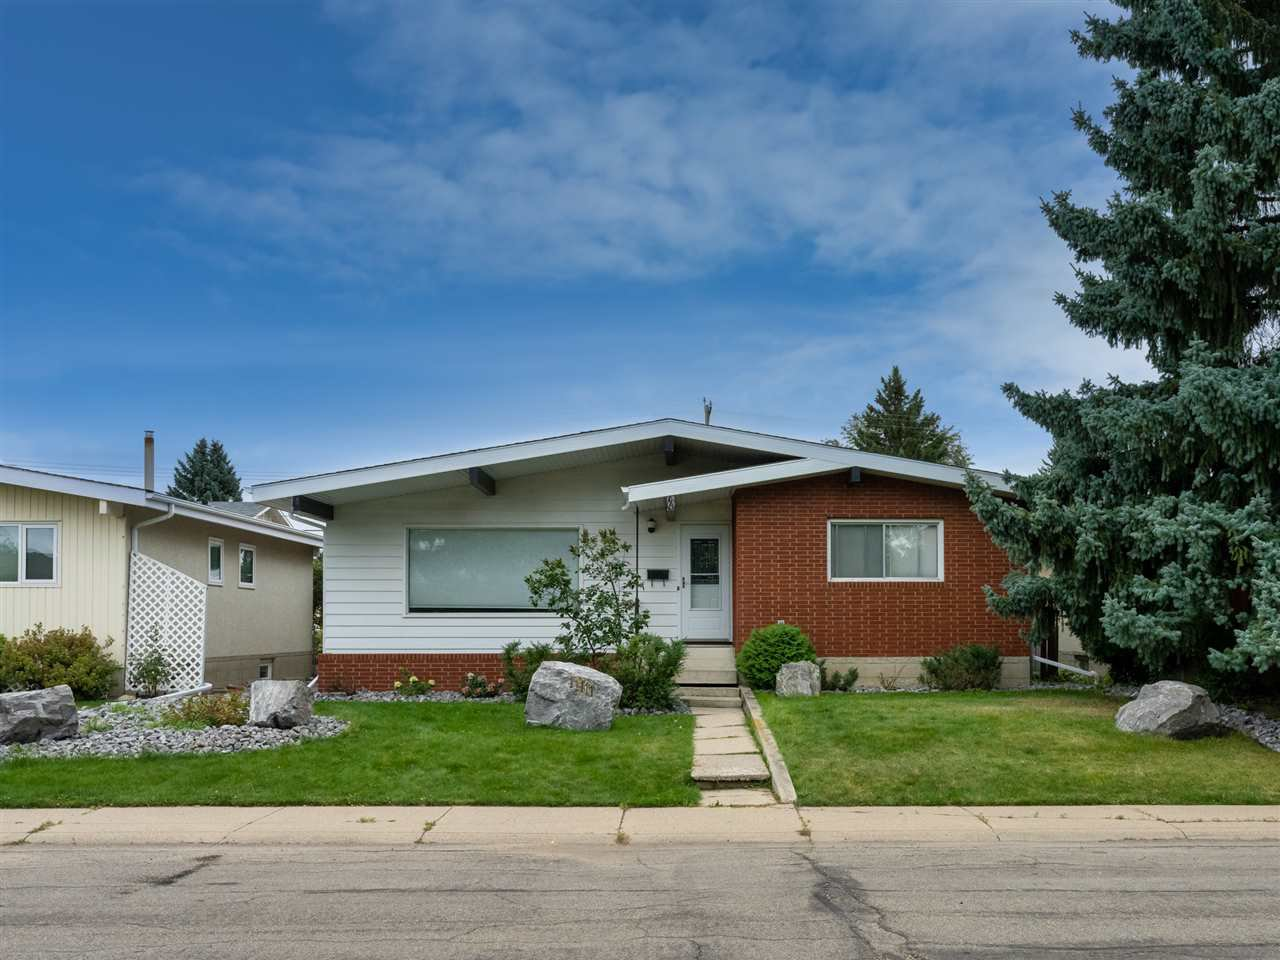 Main Photo: 11111 36 Avenue in Edmonton: Zone 16 House for sale : MLS®# E4214816